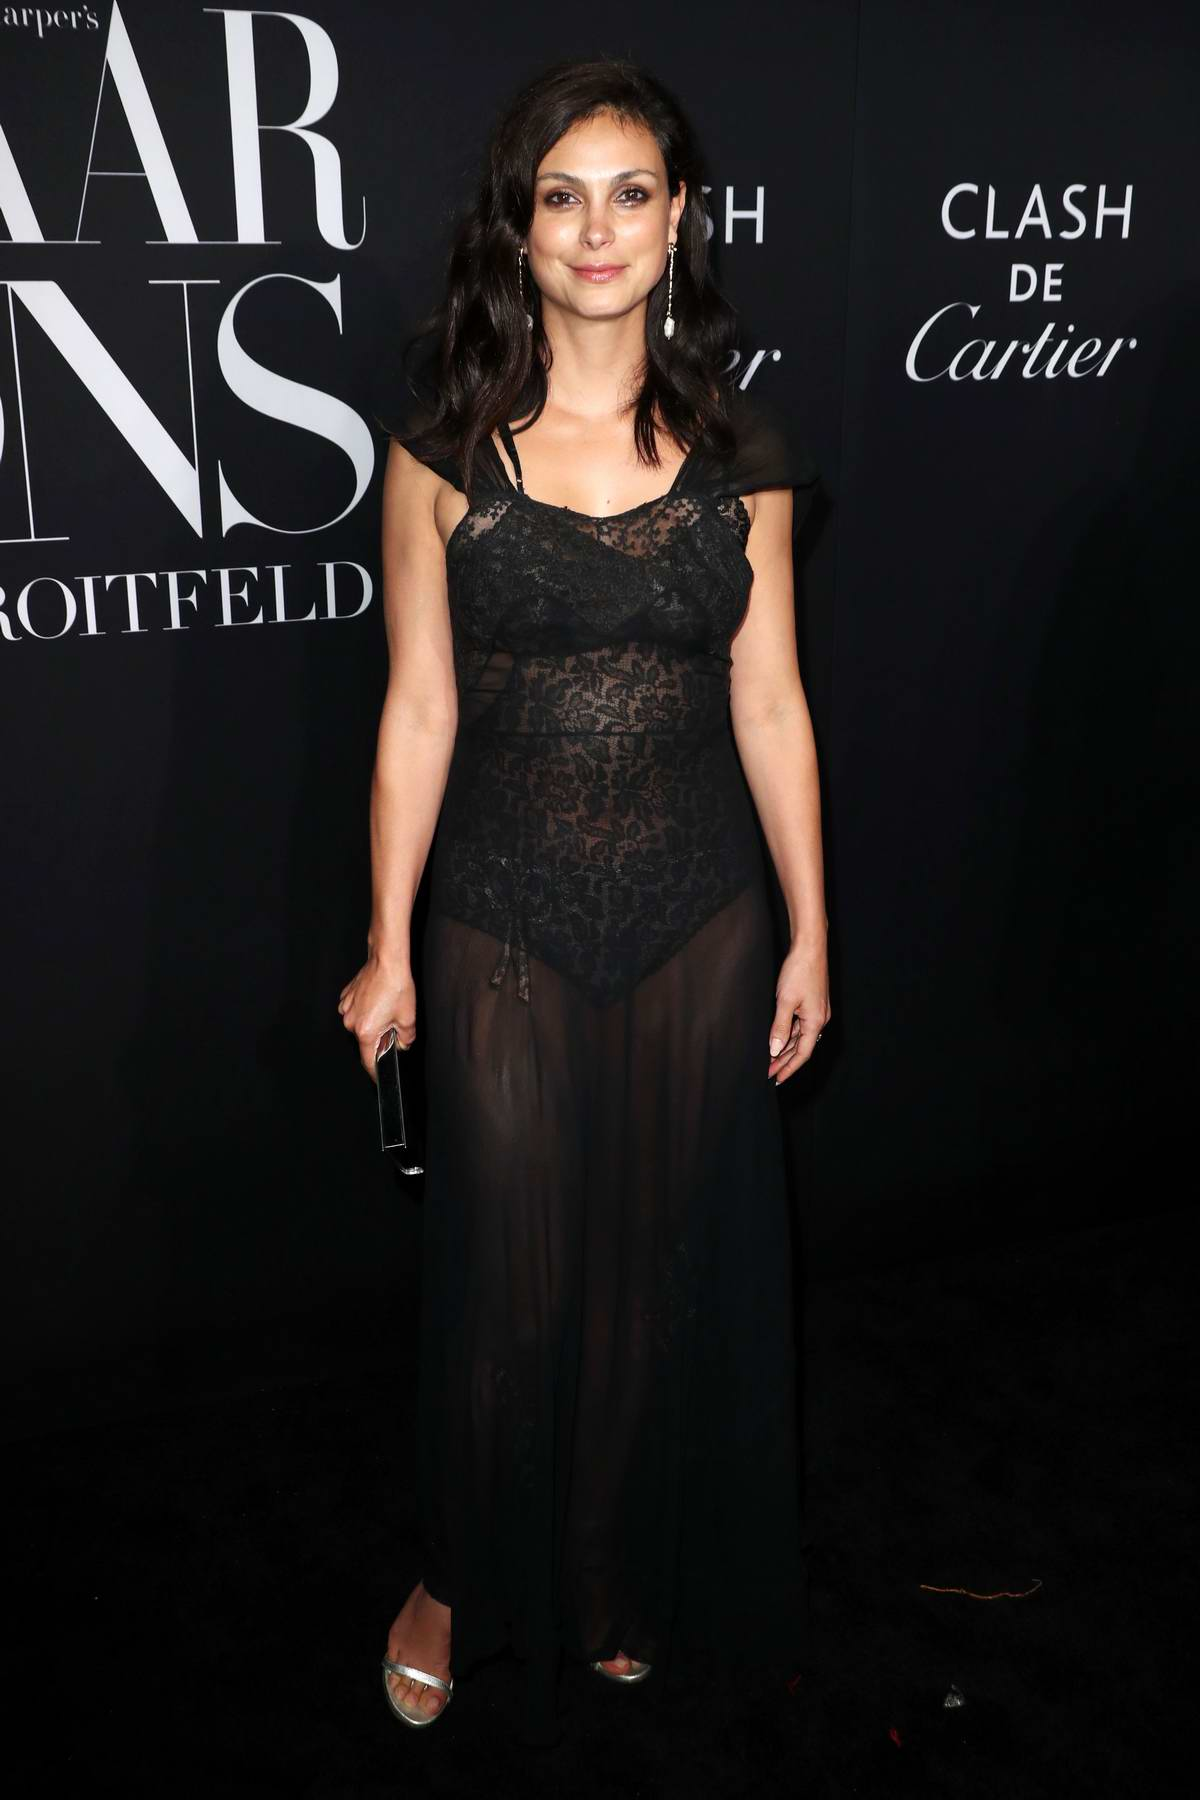 Morena Baccarin attends the 2019 Harper's Bazaar ICONS Party at The Plaza Hotel in New York City